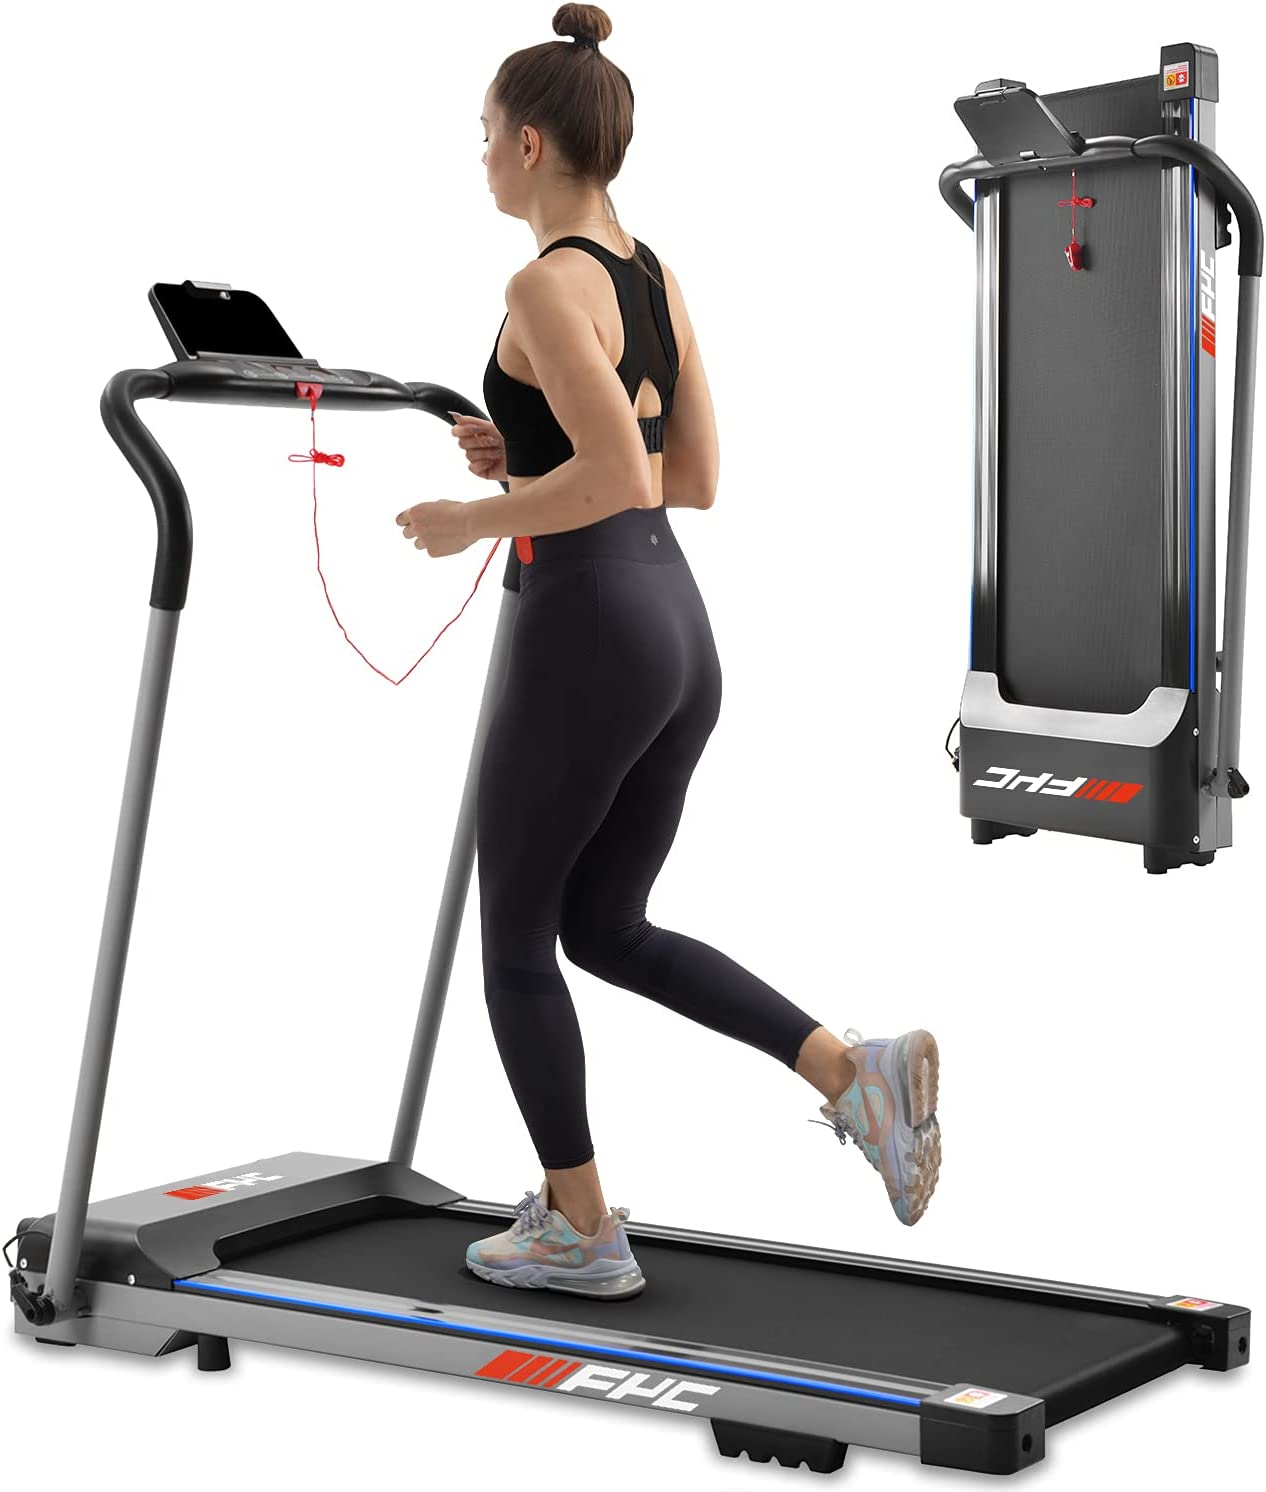 5 ☆ popular FYC Folding Treadmill for Home - Compact Running Machine Po Max 52% OFF Slim